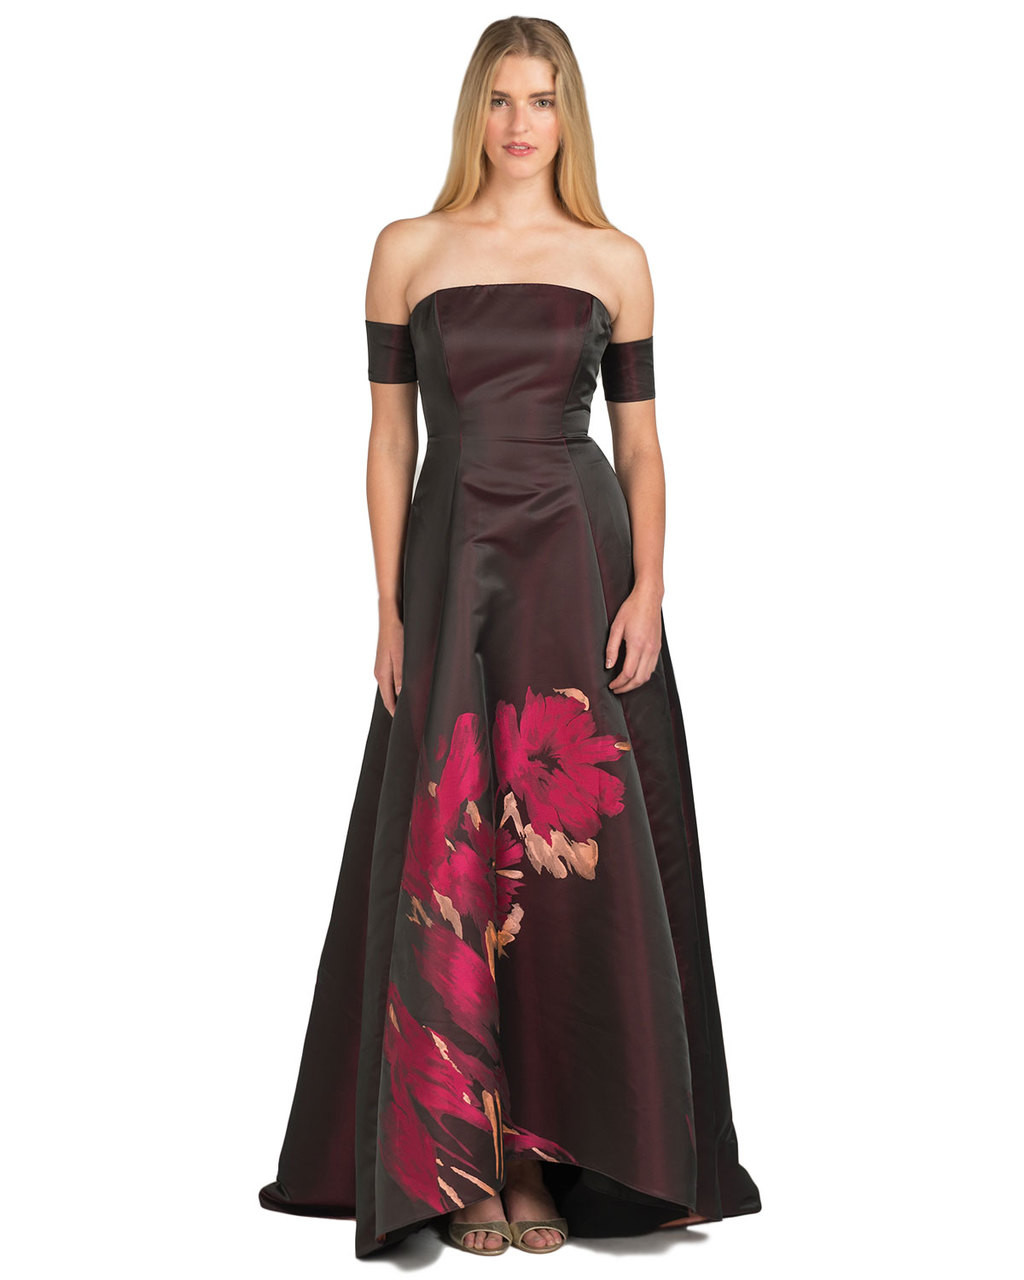 0f840c301da82 Off-Shoulder Floral Evening Gown by Badgley Mischka